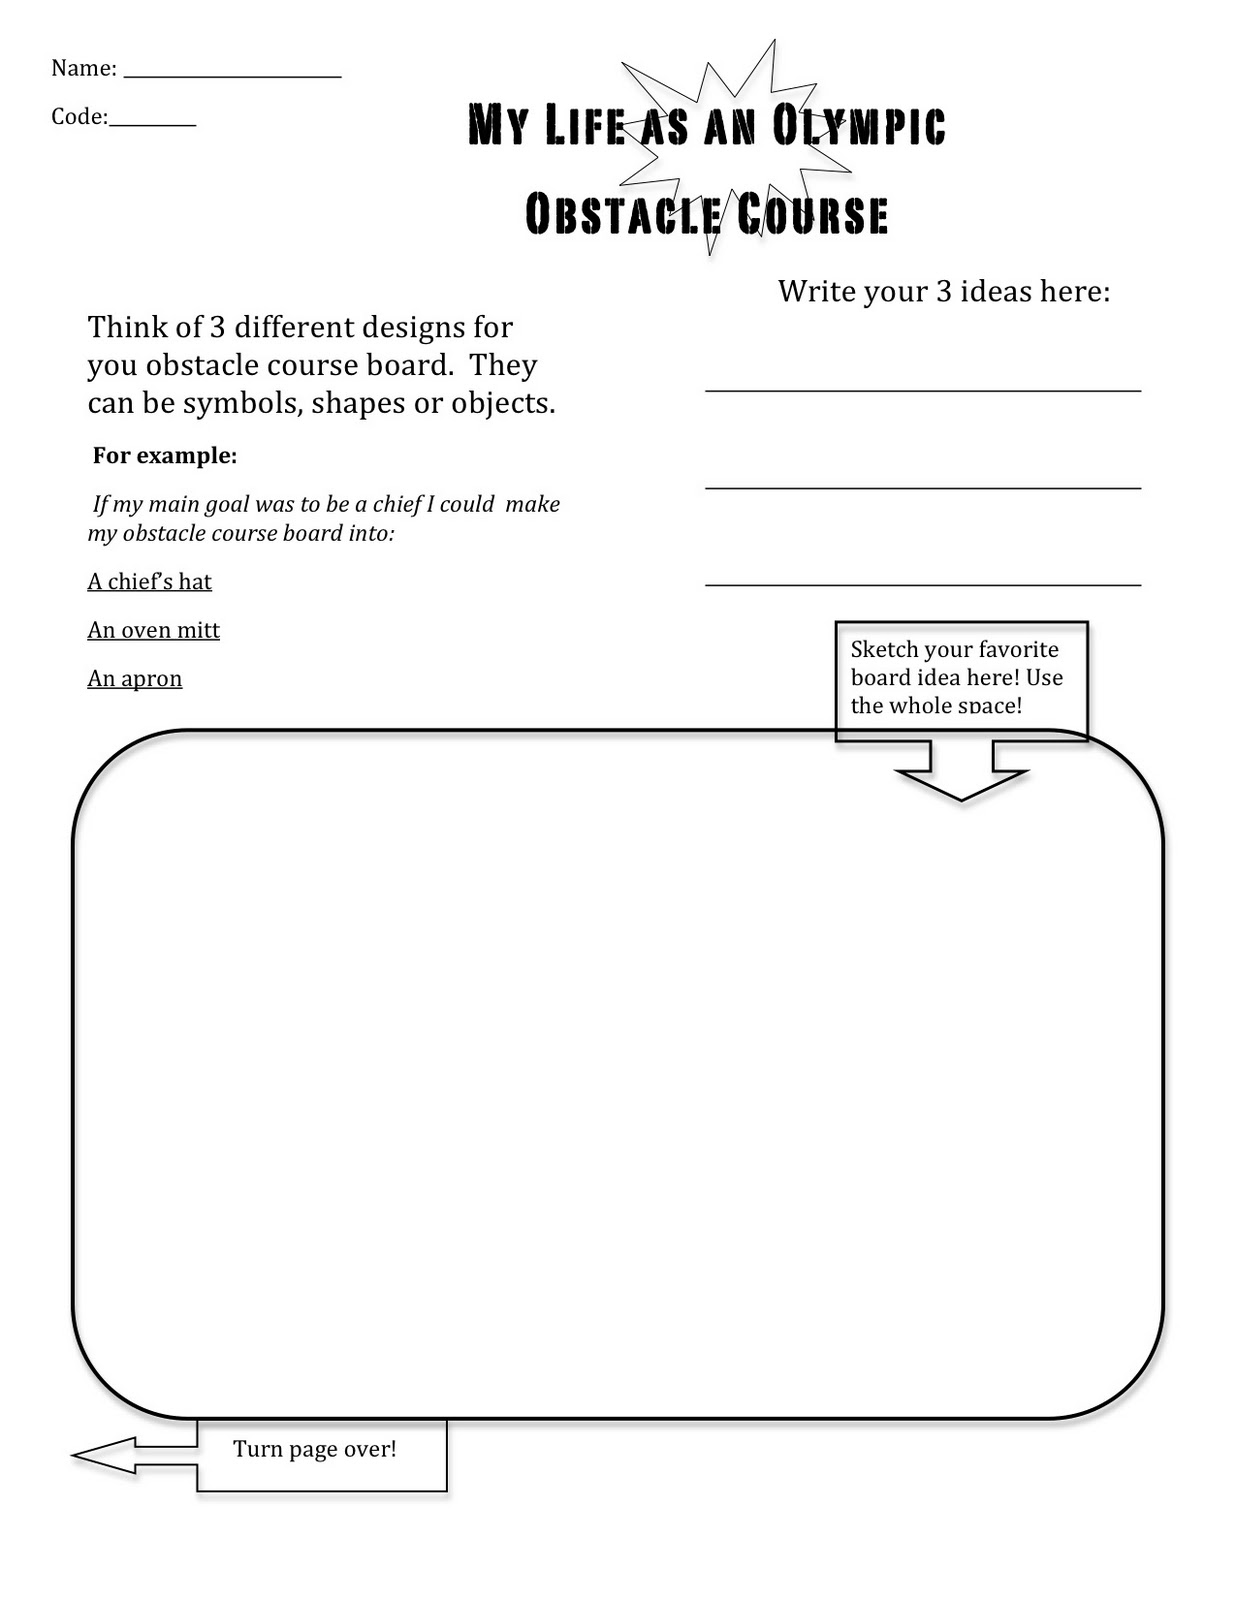 your life as an olympic obstacle course packet for 3rd grade art unit